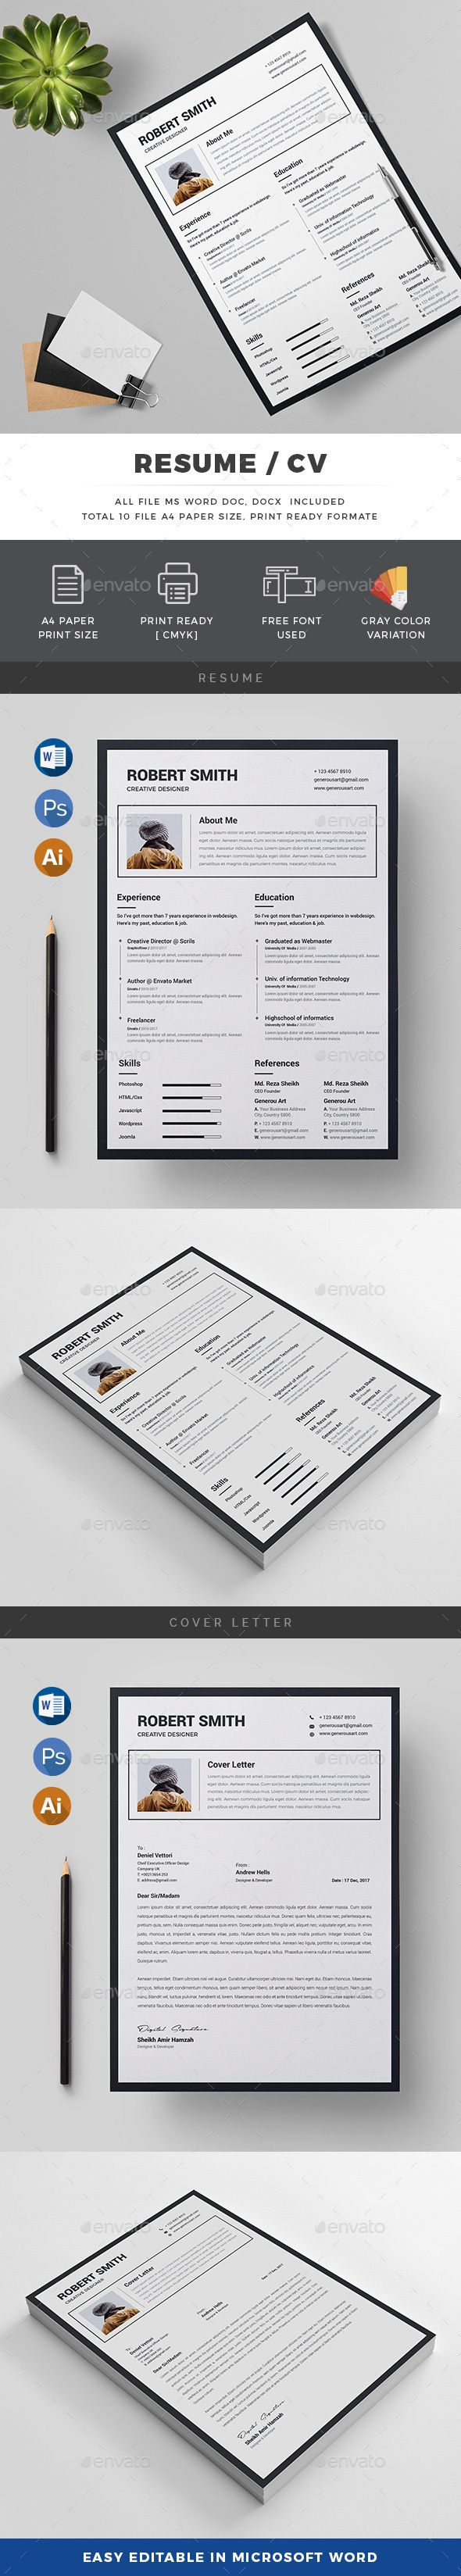 Resume 50 best Resume Templates images on